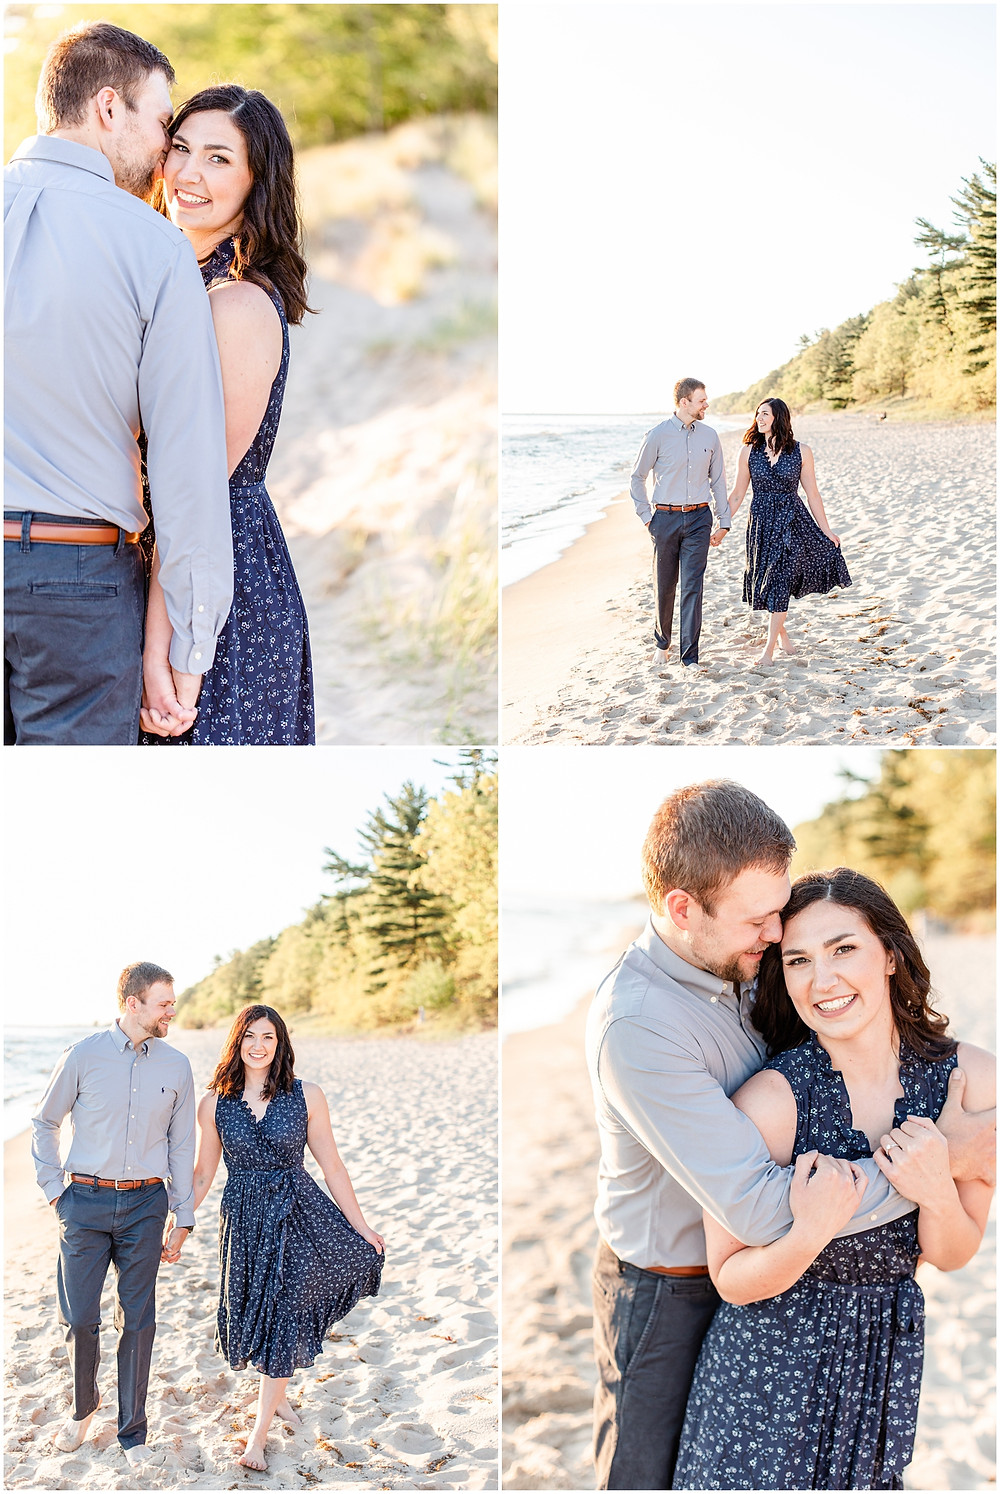 Josh and Andrea wedding photography husband and wife photographer team michigan pictures Lake Harbor Park engagement pictures session photo shoot fiance kissing walking beach